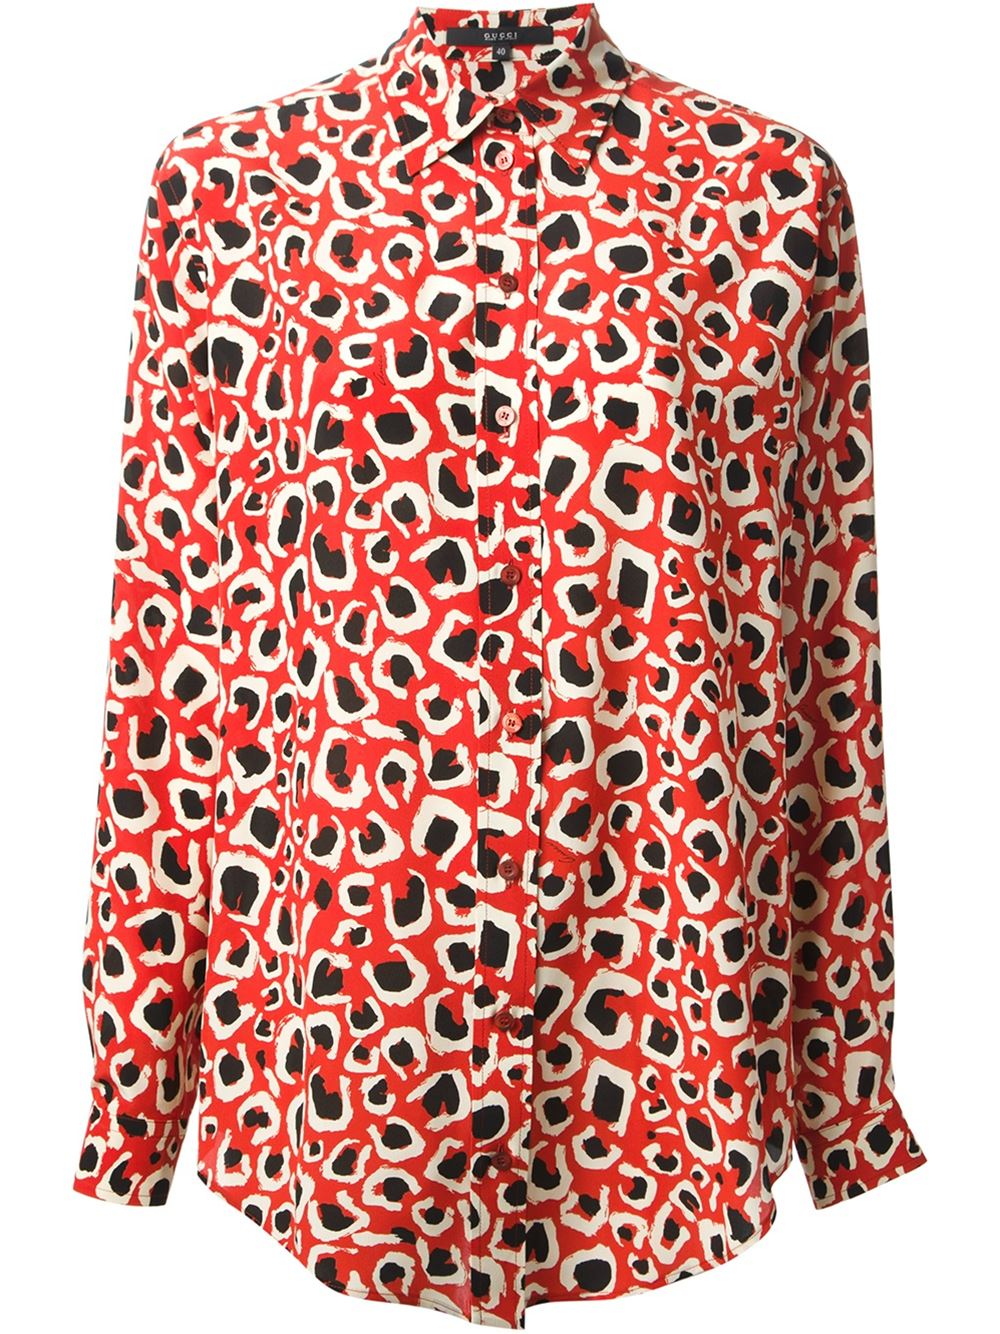 Gucci Animal Print Shirt in Red - 1270.5KB